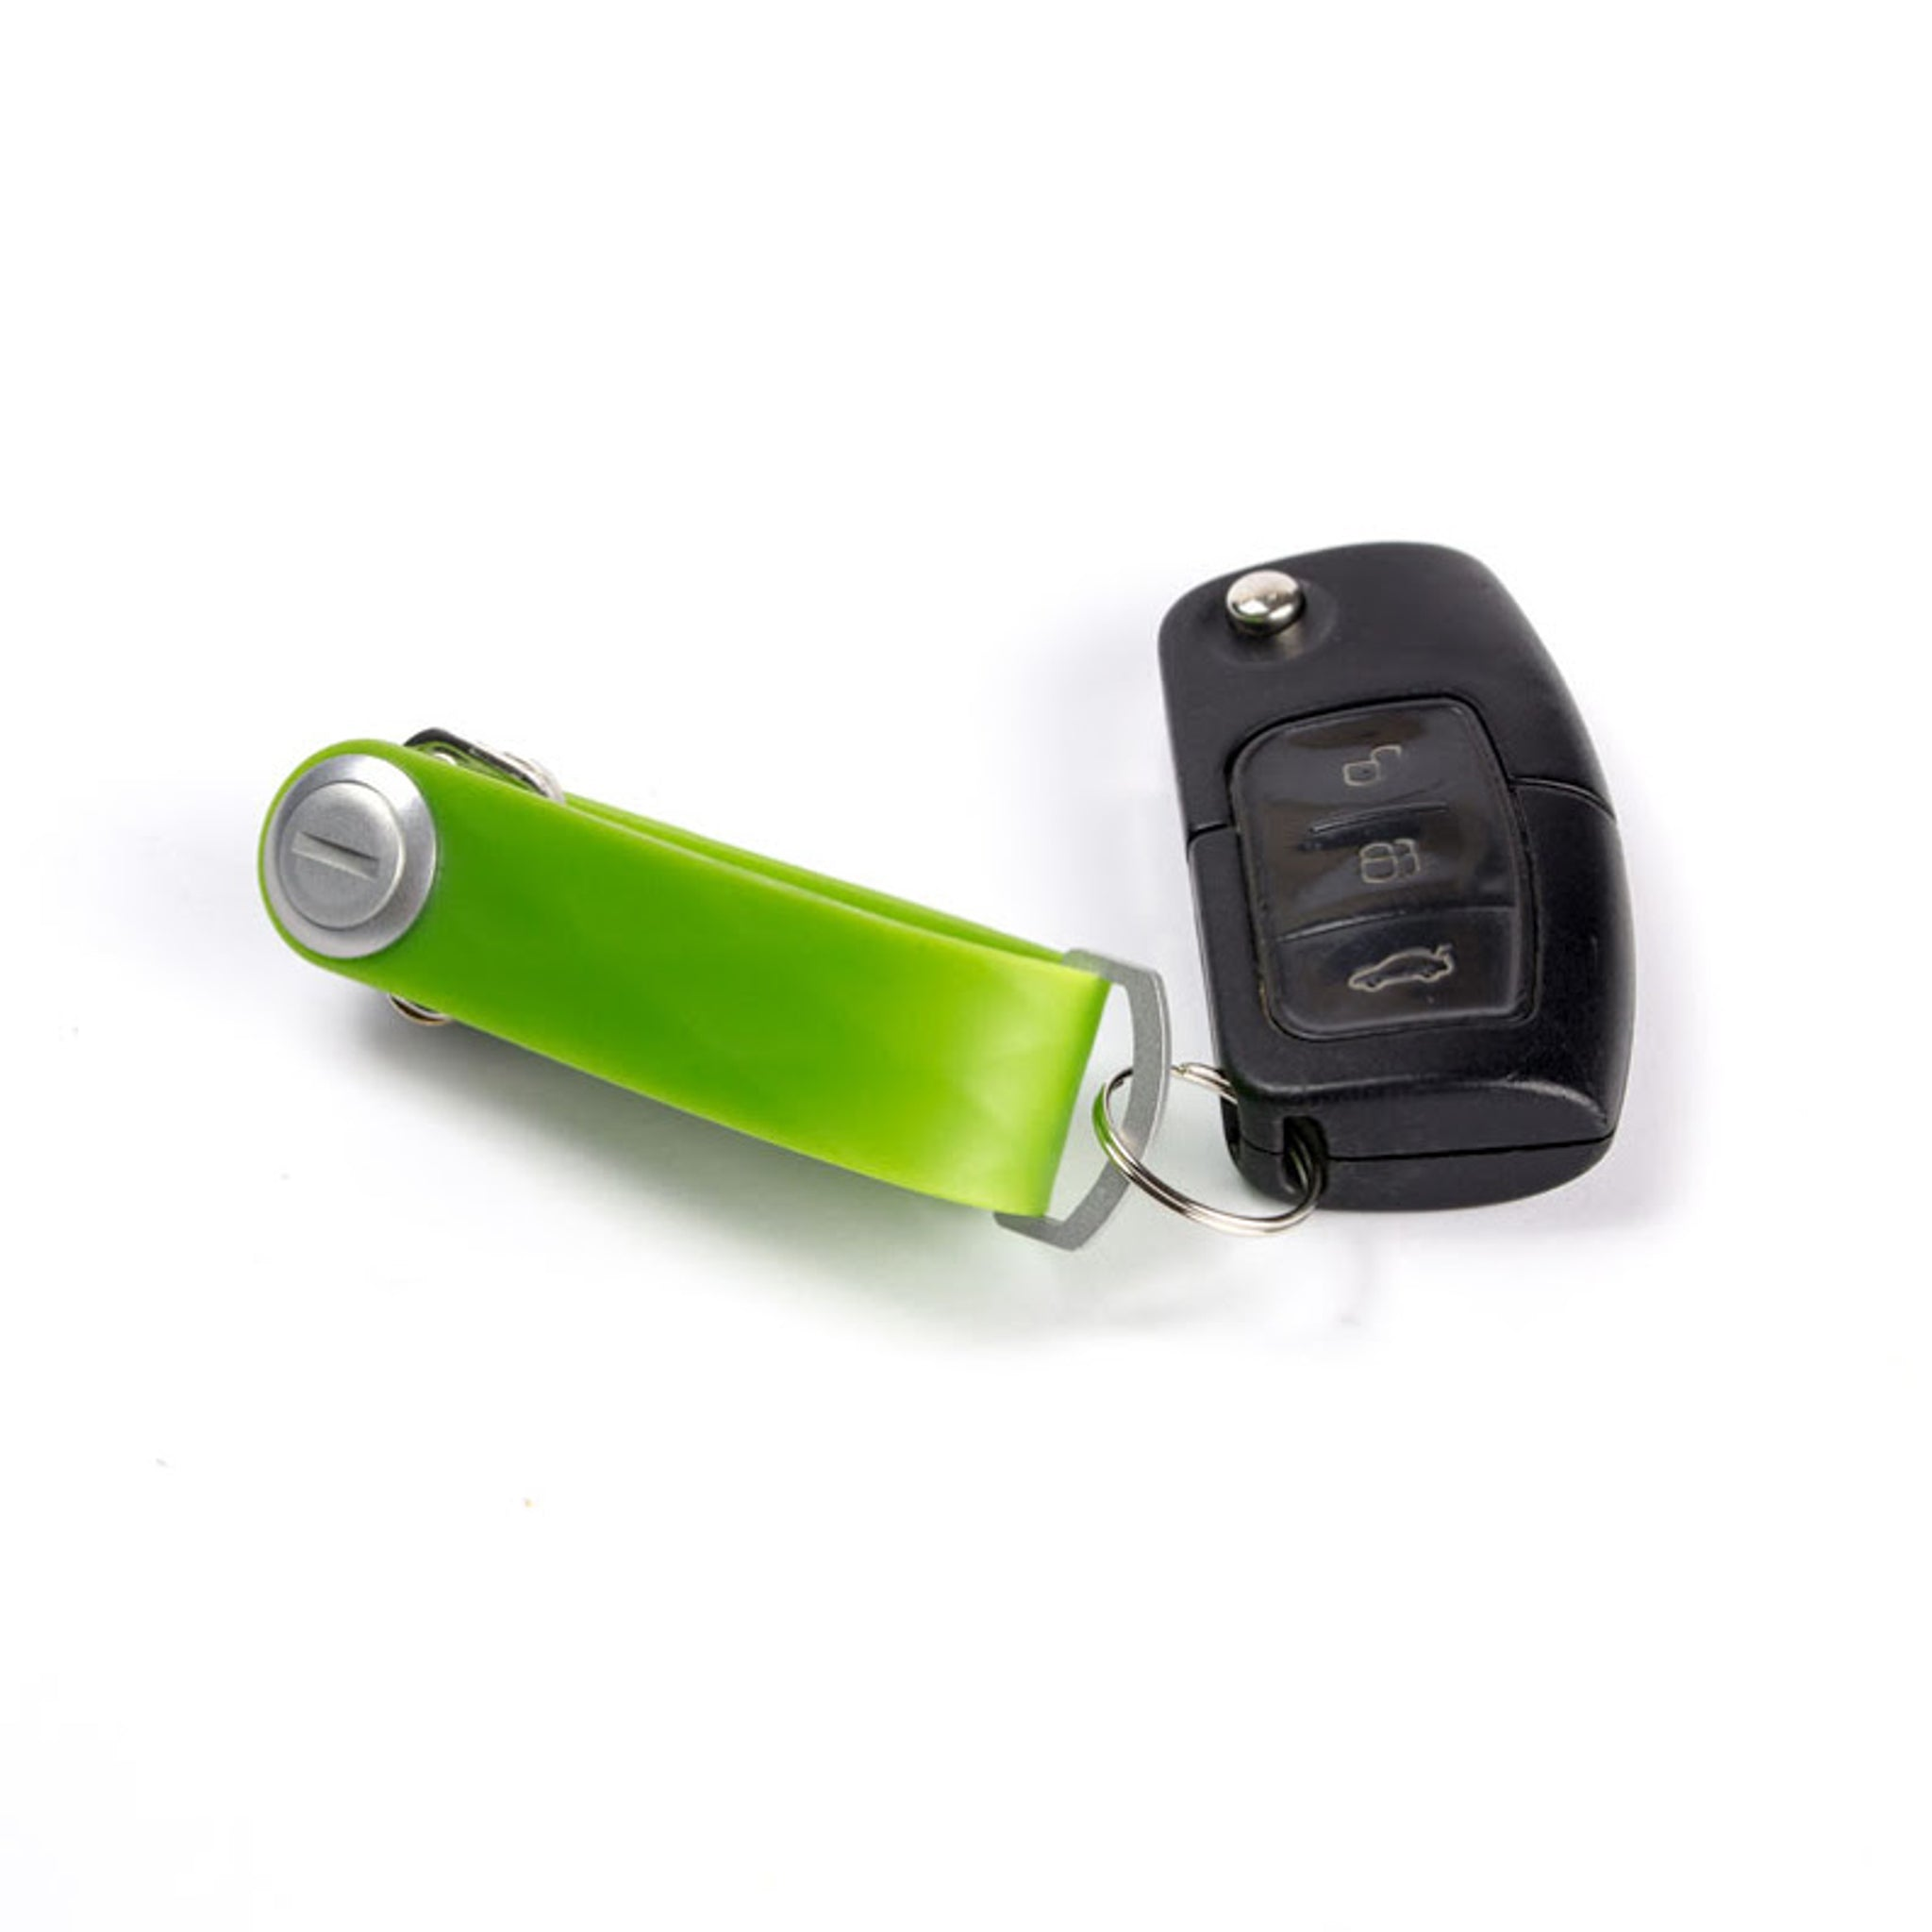 Orbitkey Active Key Organizer Green